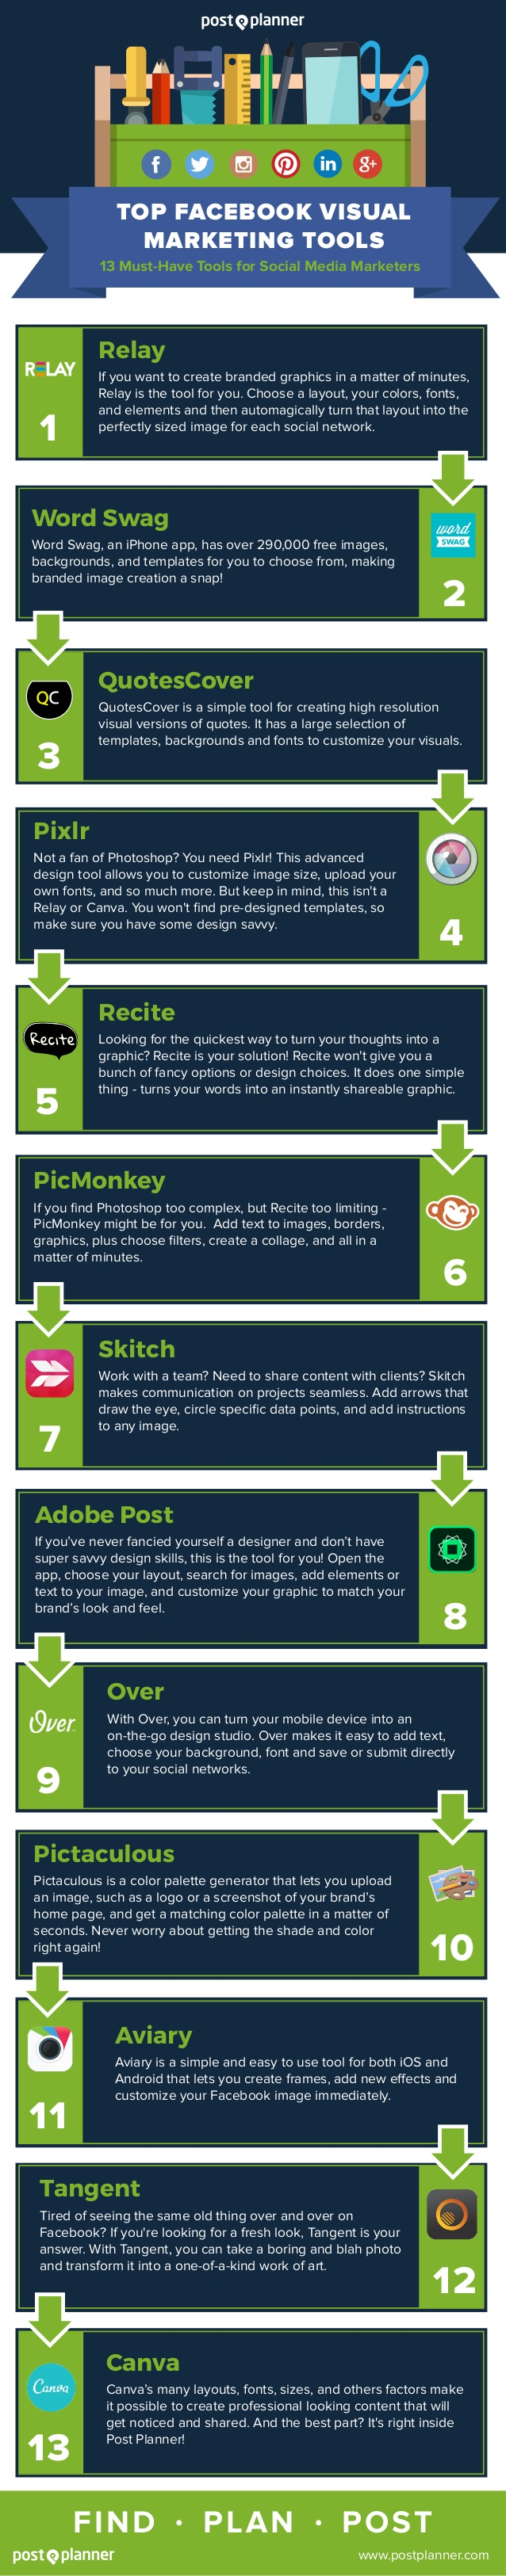 13 herramientas visuales para marketing en Facebook